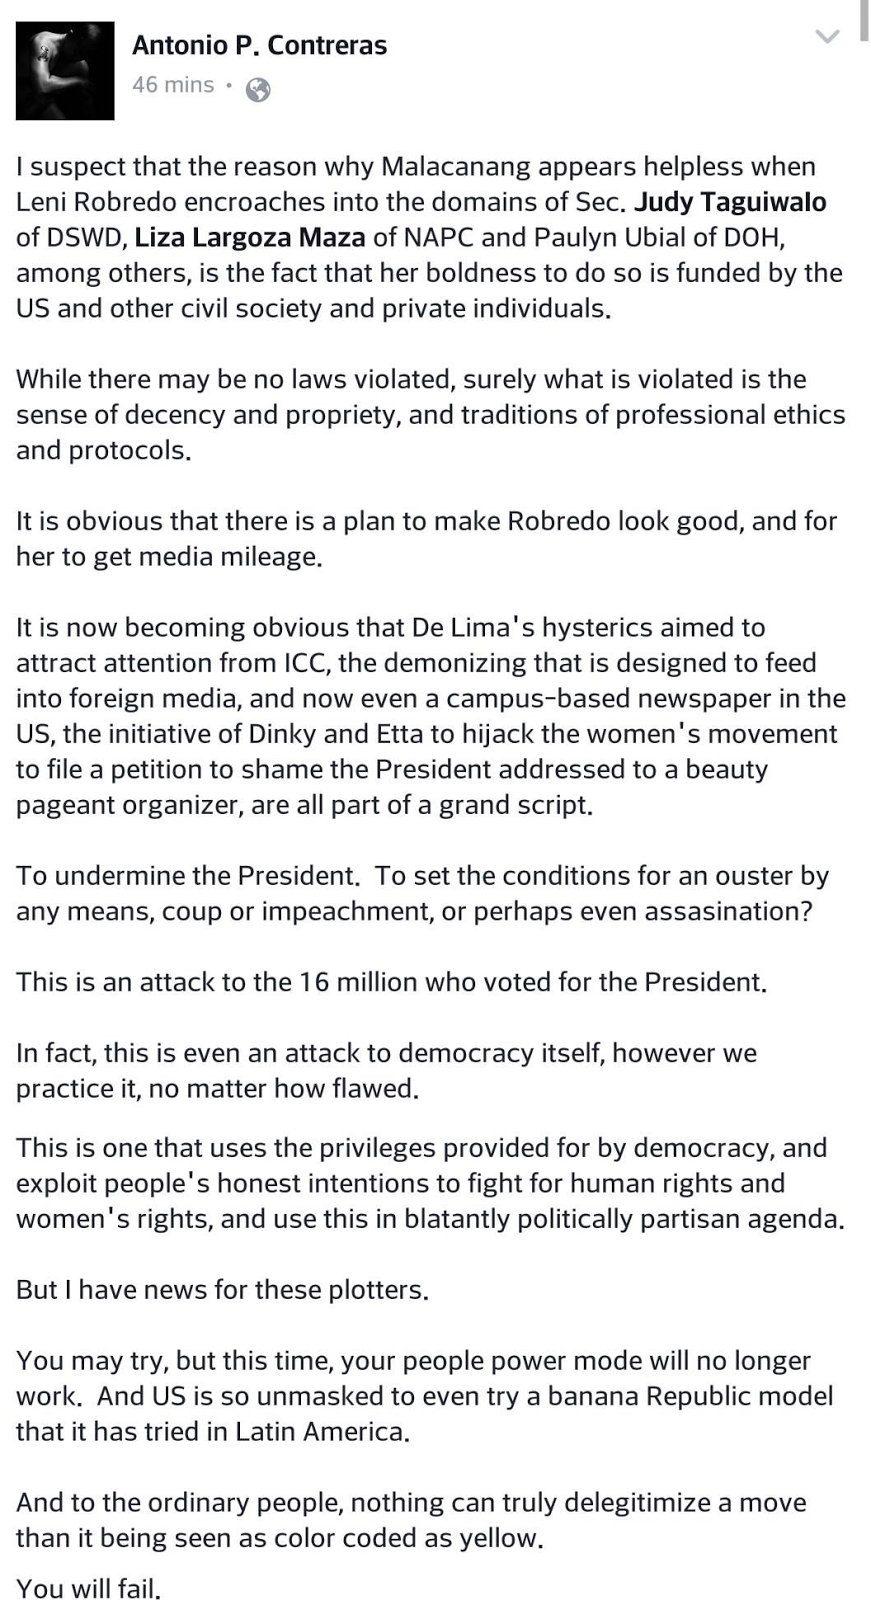 Well known DLSU professor: Robredo, De Lima attacking PDuterte and democracy, but will fail